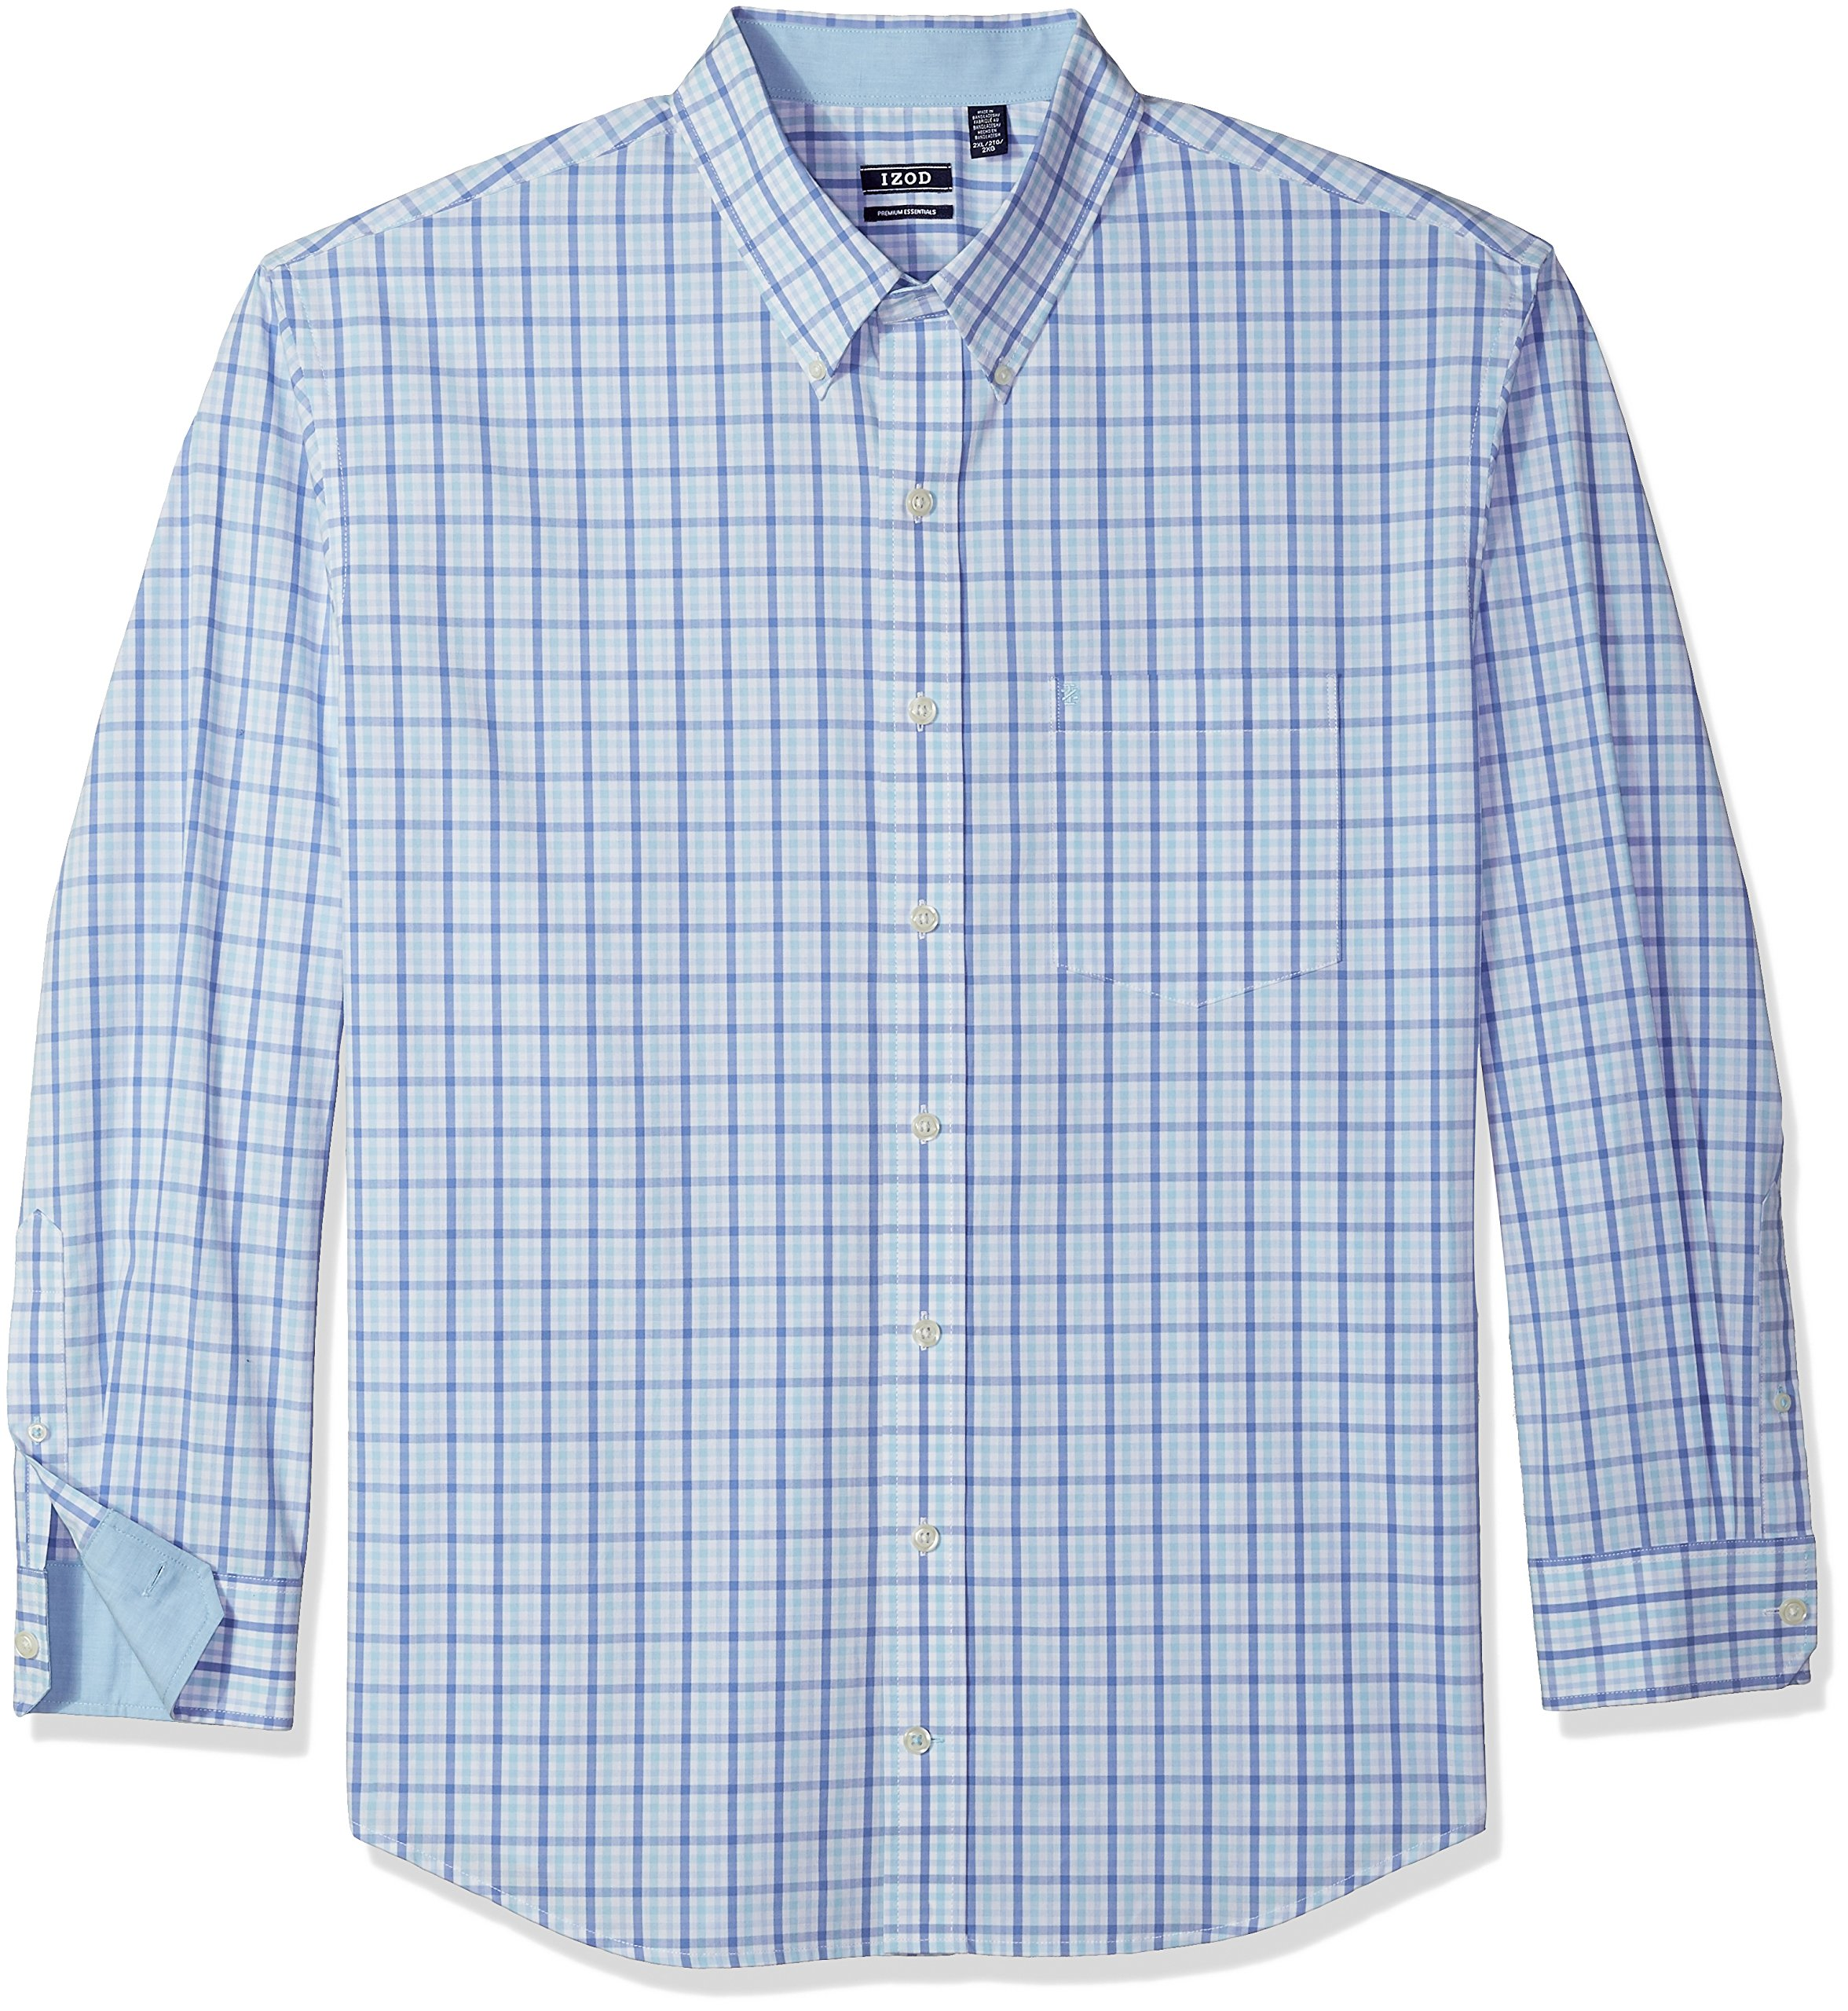 IZOD Men's Big and Tall Button Down Long Sleeve Stretch Performance Tattersal Shirt